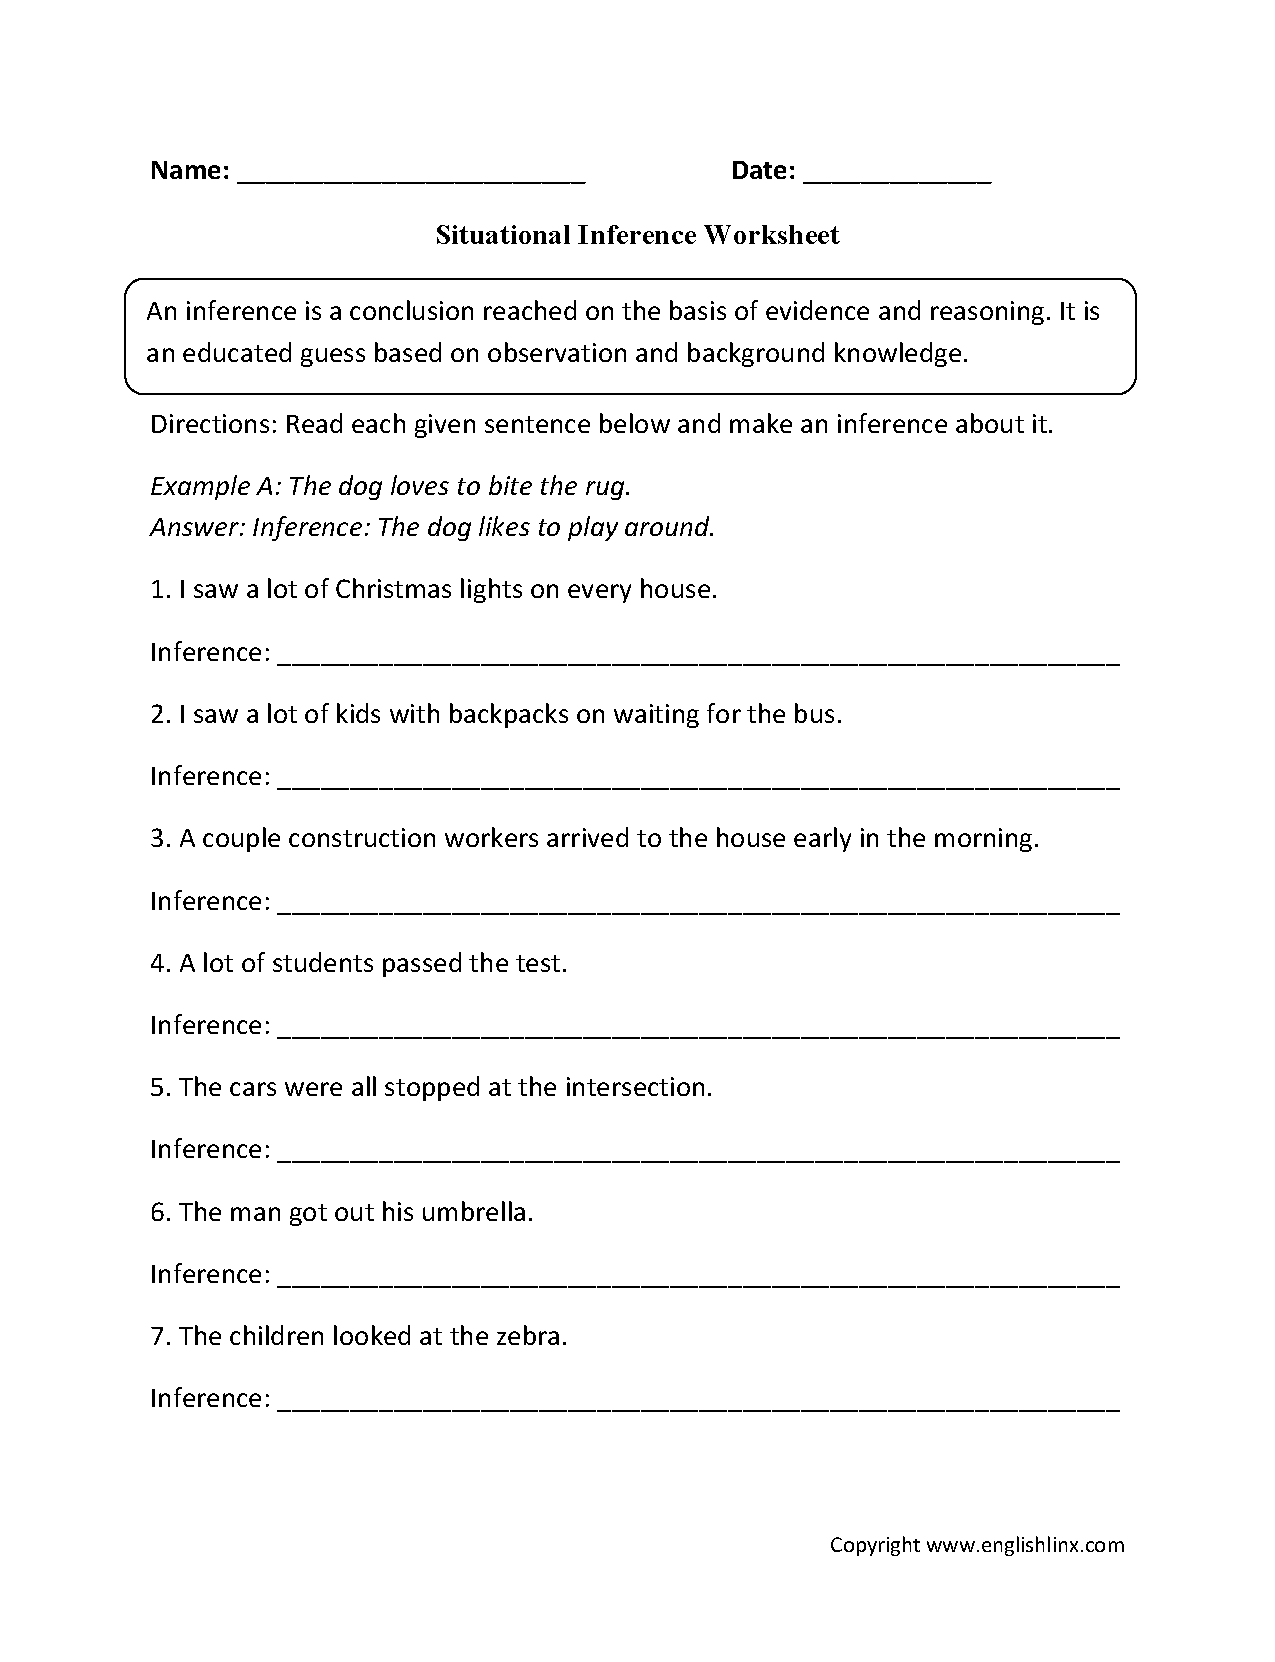 Reading Worksheets – Drawing Conclusions Worksheets 2nd Grade